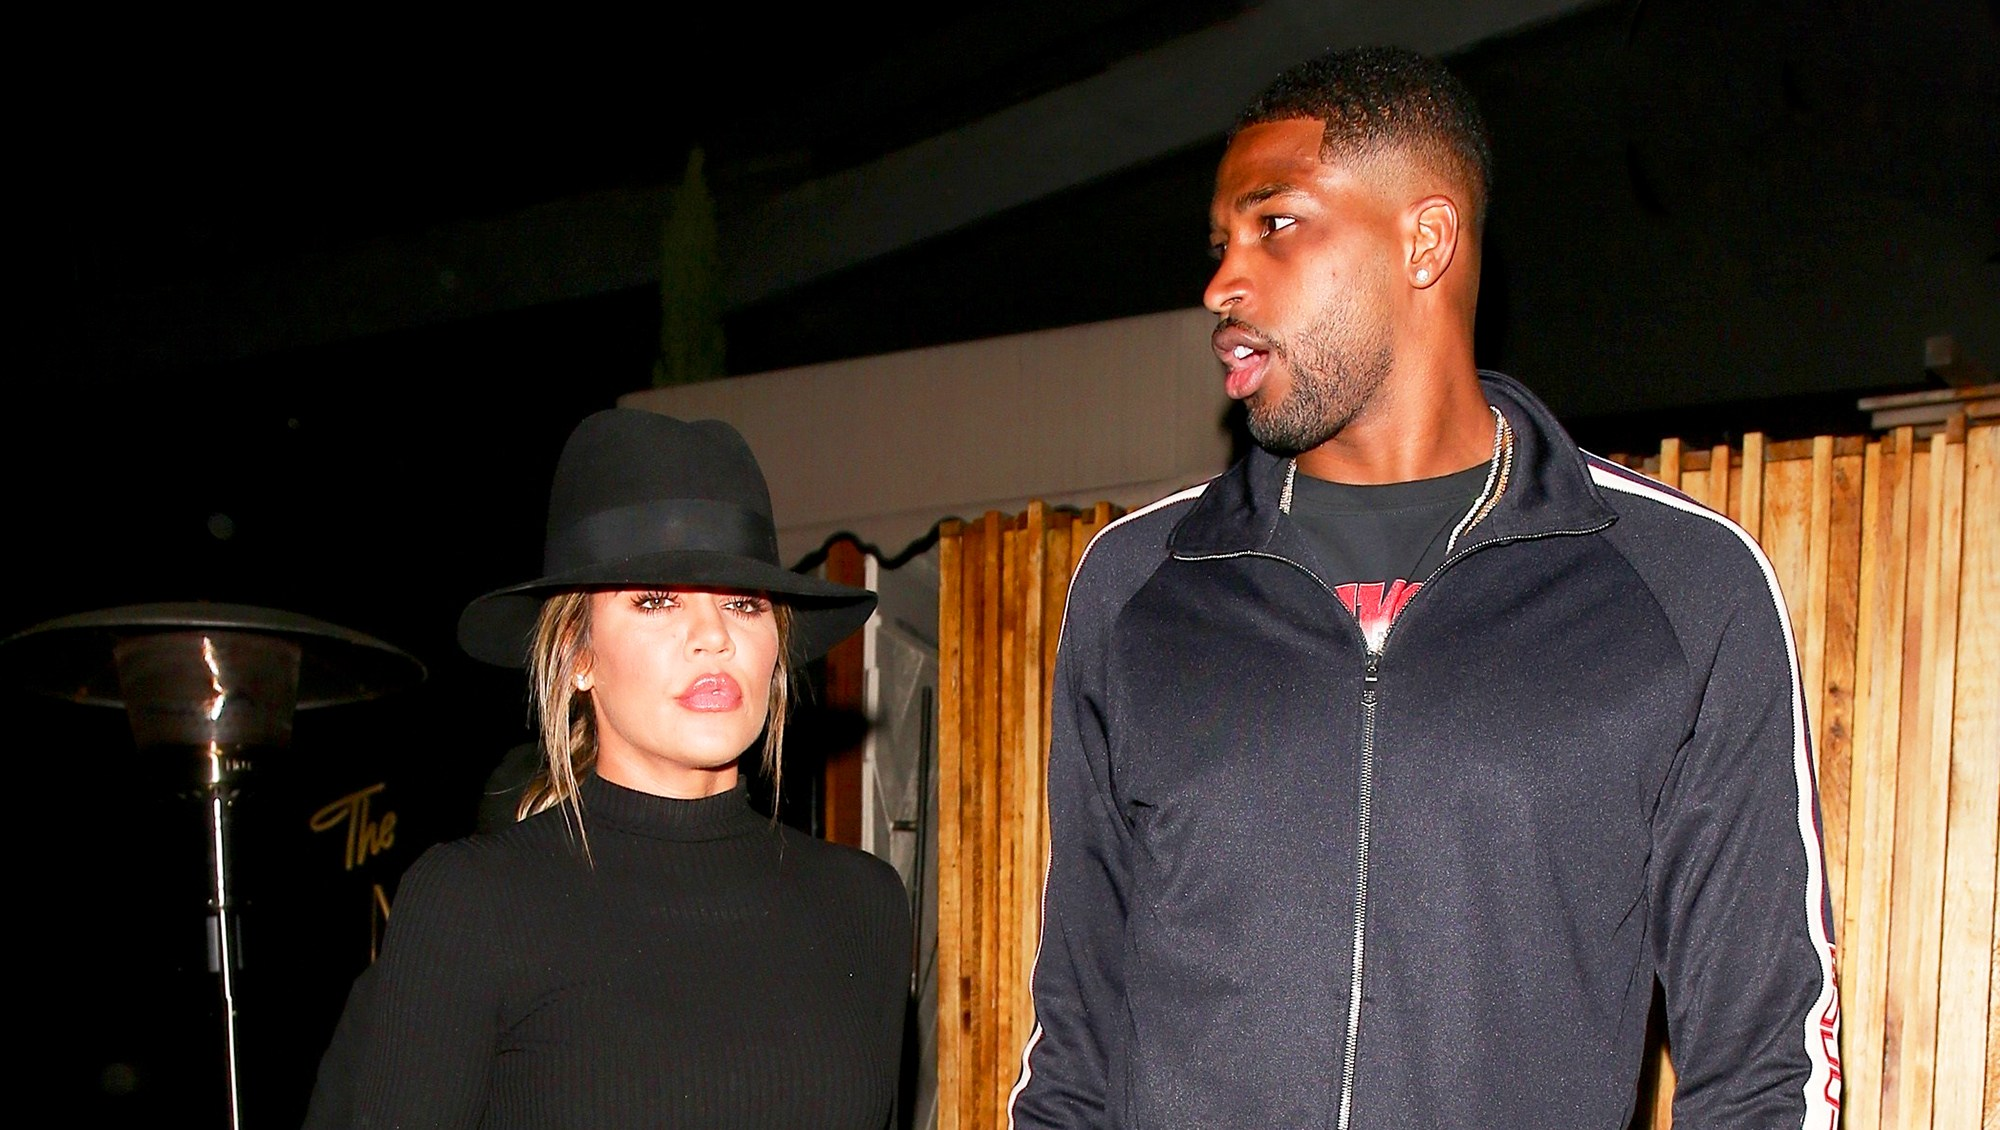 Khloe Kardashian and Tristan Thompson step out to The Nice Guy on July 6, 2017 in West Hollywood, California.